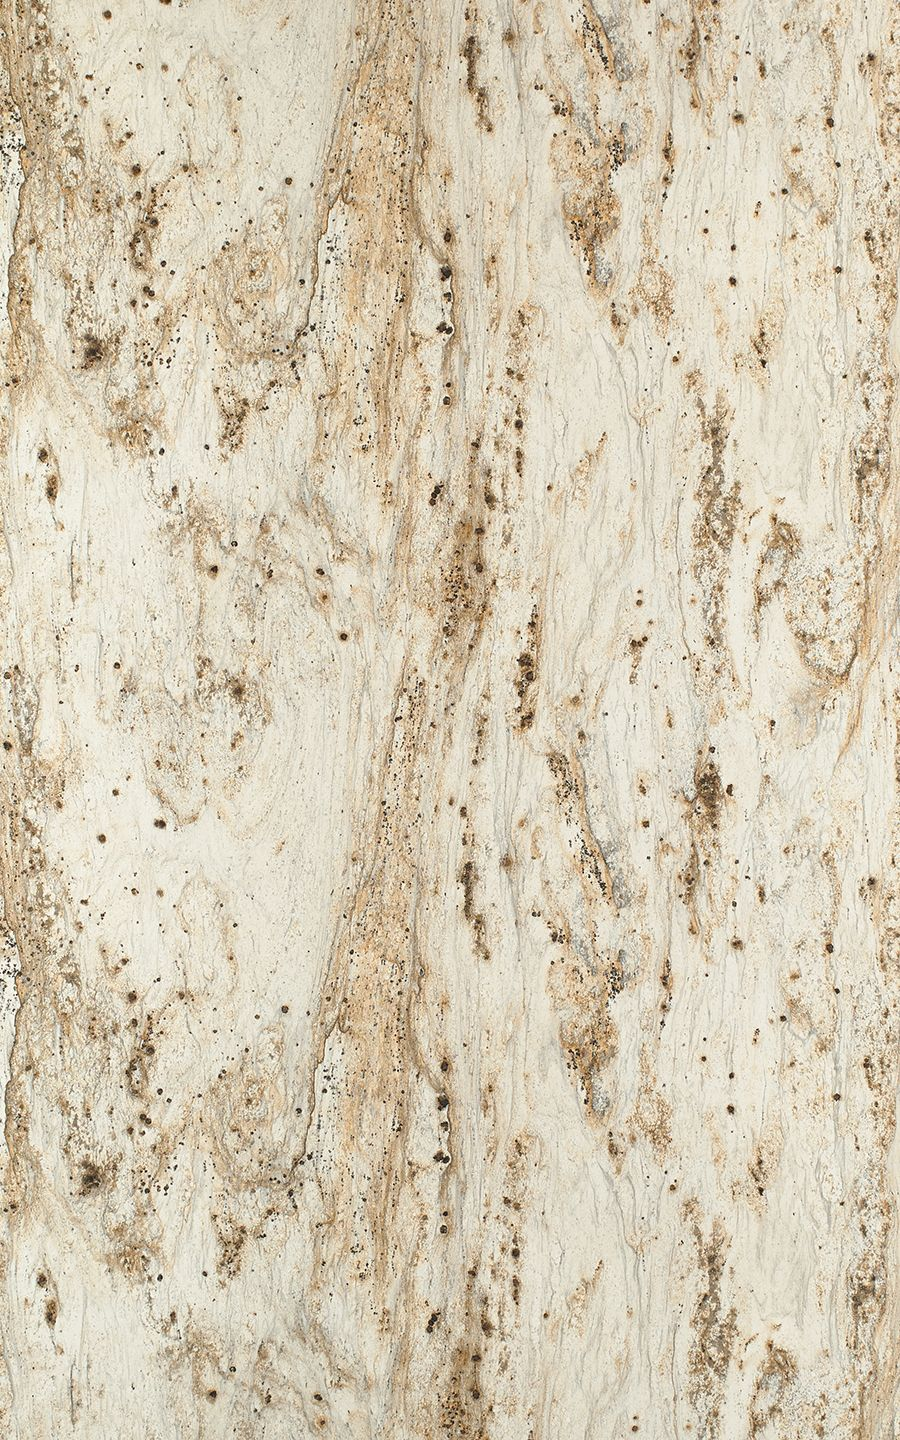 Heads Up Homeowners Formica 180fx 3546 River Gold Is Now